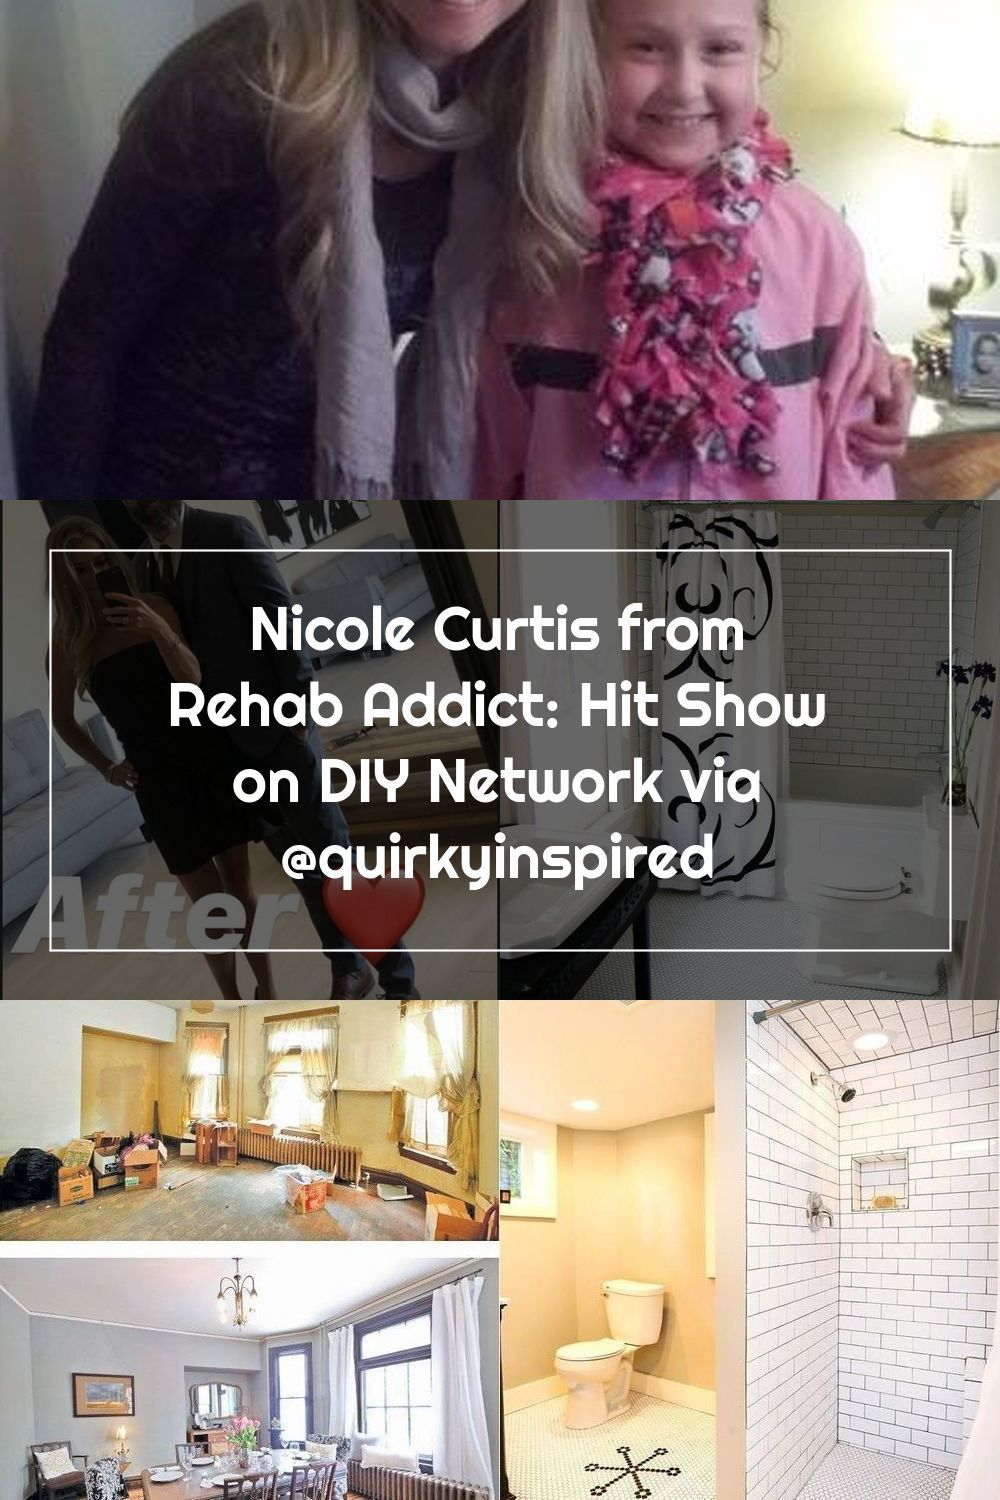 Nicole Curtis from Rehab Addict Hit Show on DIY Network